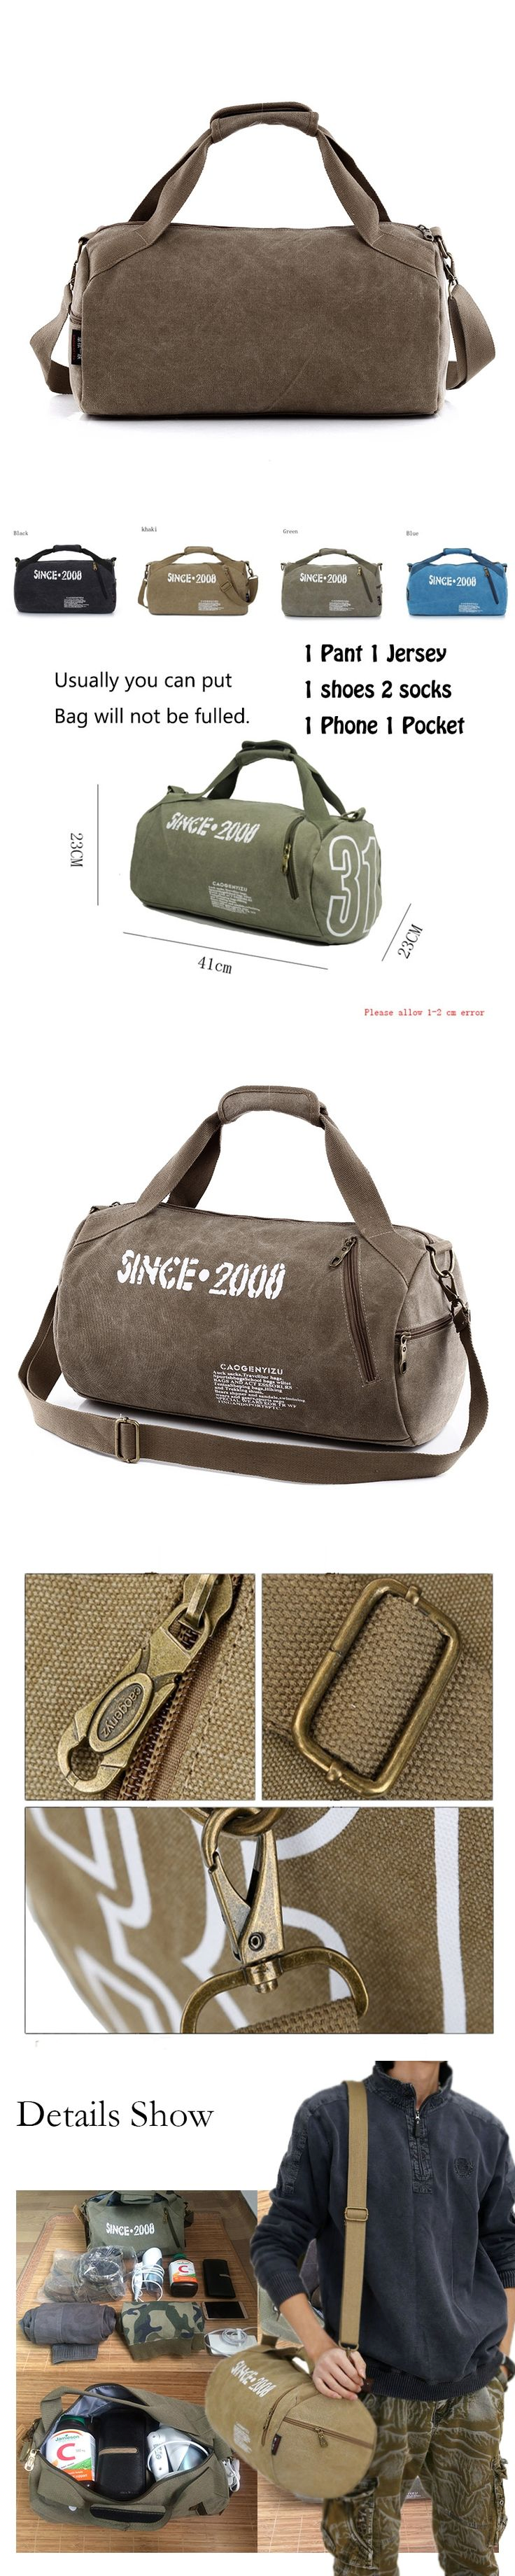 Canvas Sport Bag Training Gym Men Woman Fitness Bags Durable Multifunction Handbag Outdoor Sporting Tote